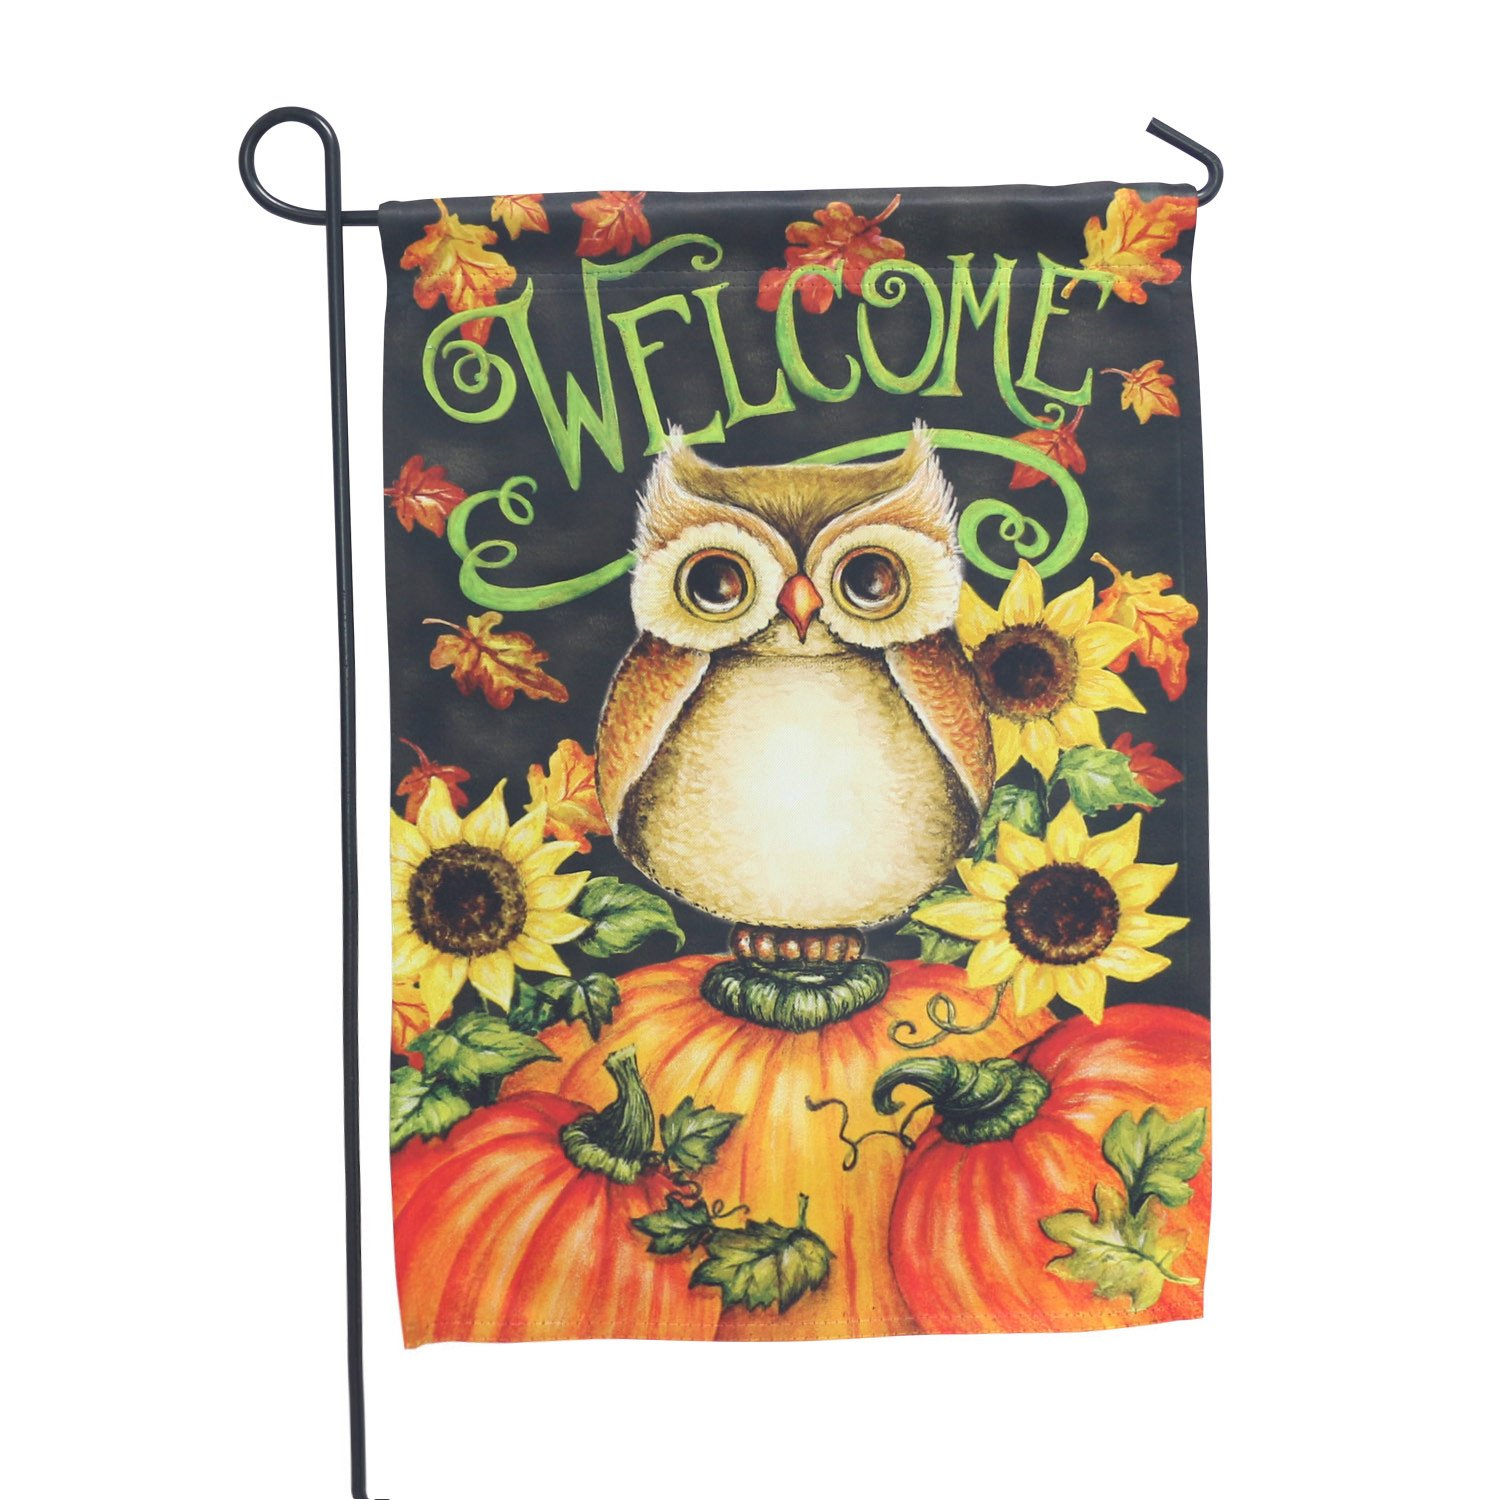 LAYOER Home Garden Flag 13 x 18 Inch House Double Sided Welcome 12 x 18 Inch (Owl Pumpkin Sunflowers Welcome)